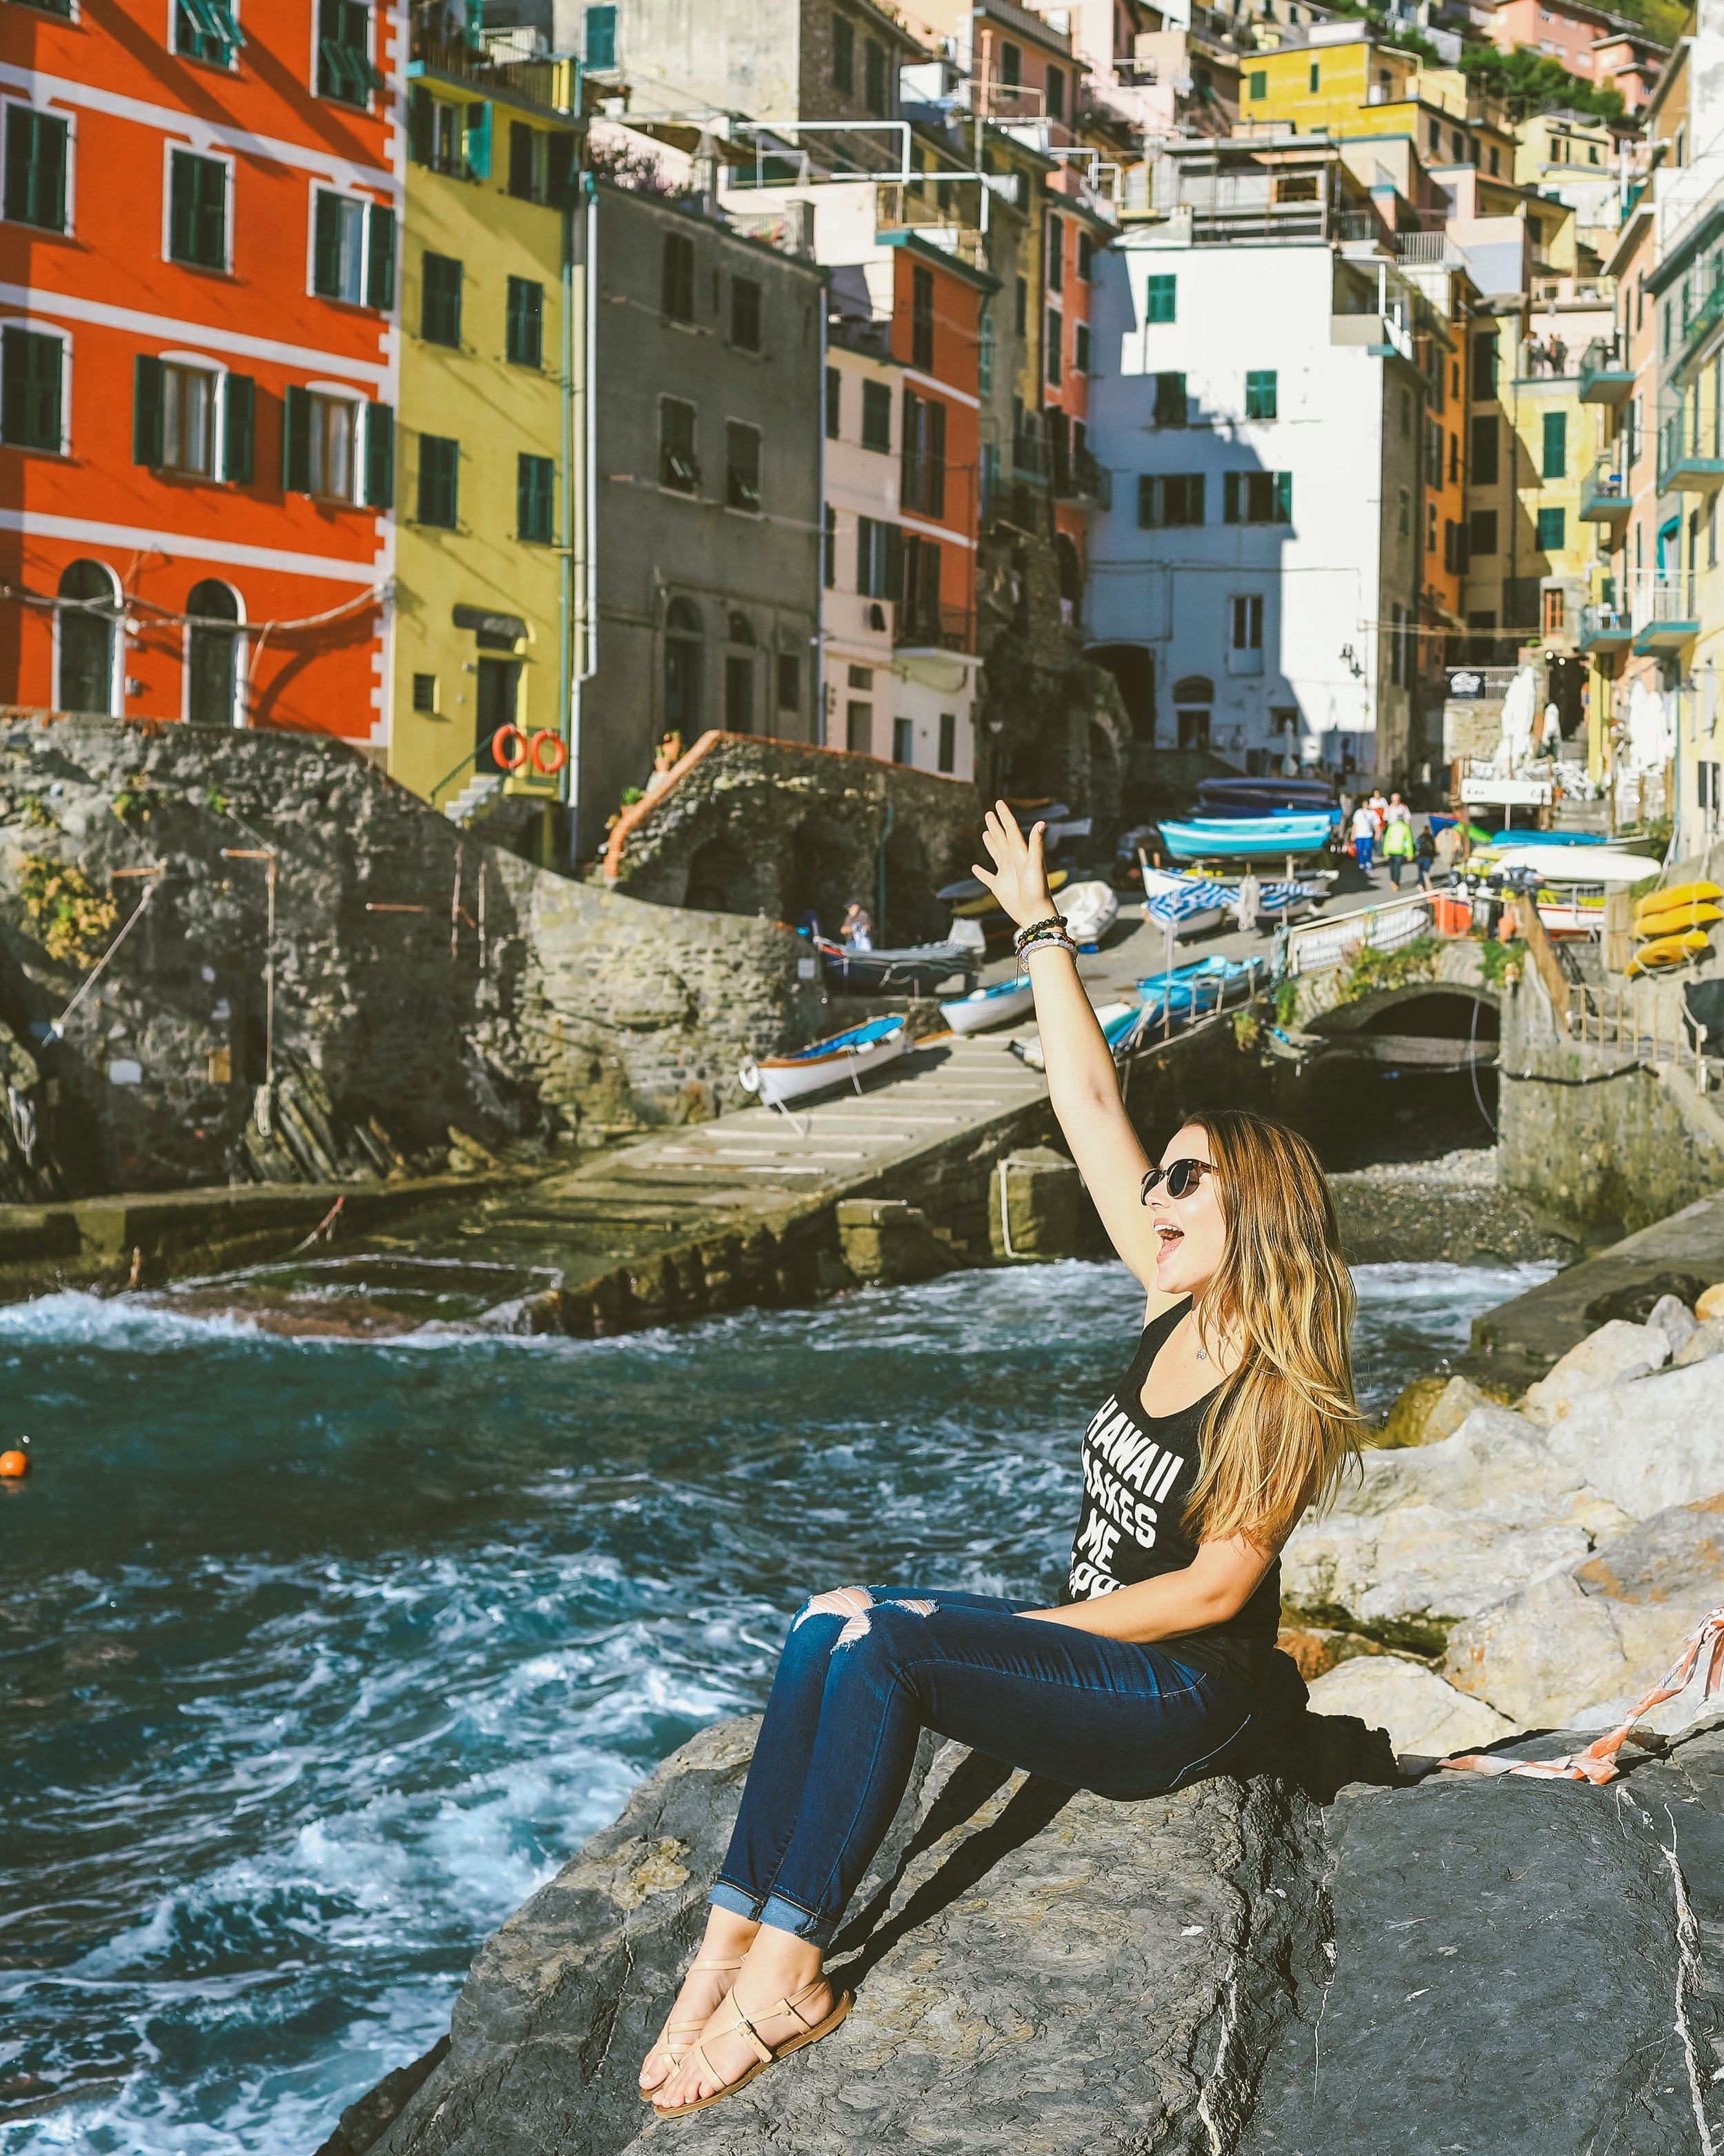 Travel will always be one of the biggest influences on my photography and life. -